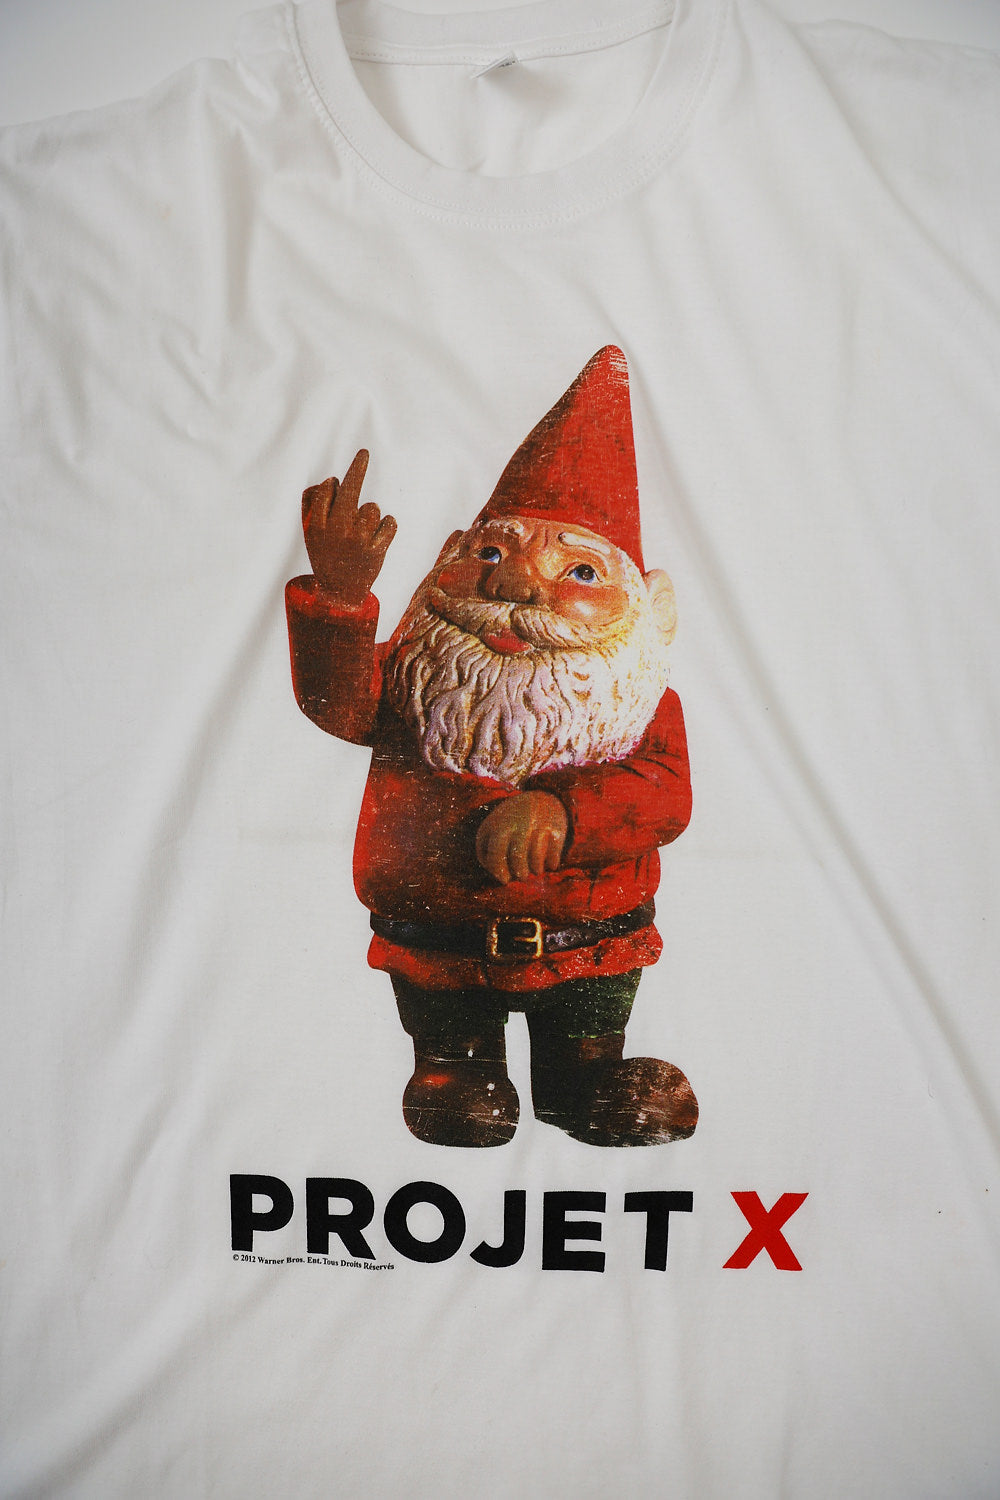 PROJECT X MOVIE PROMO